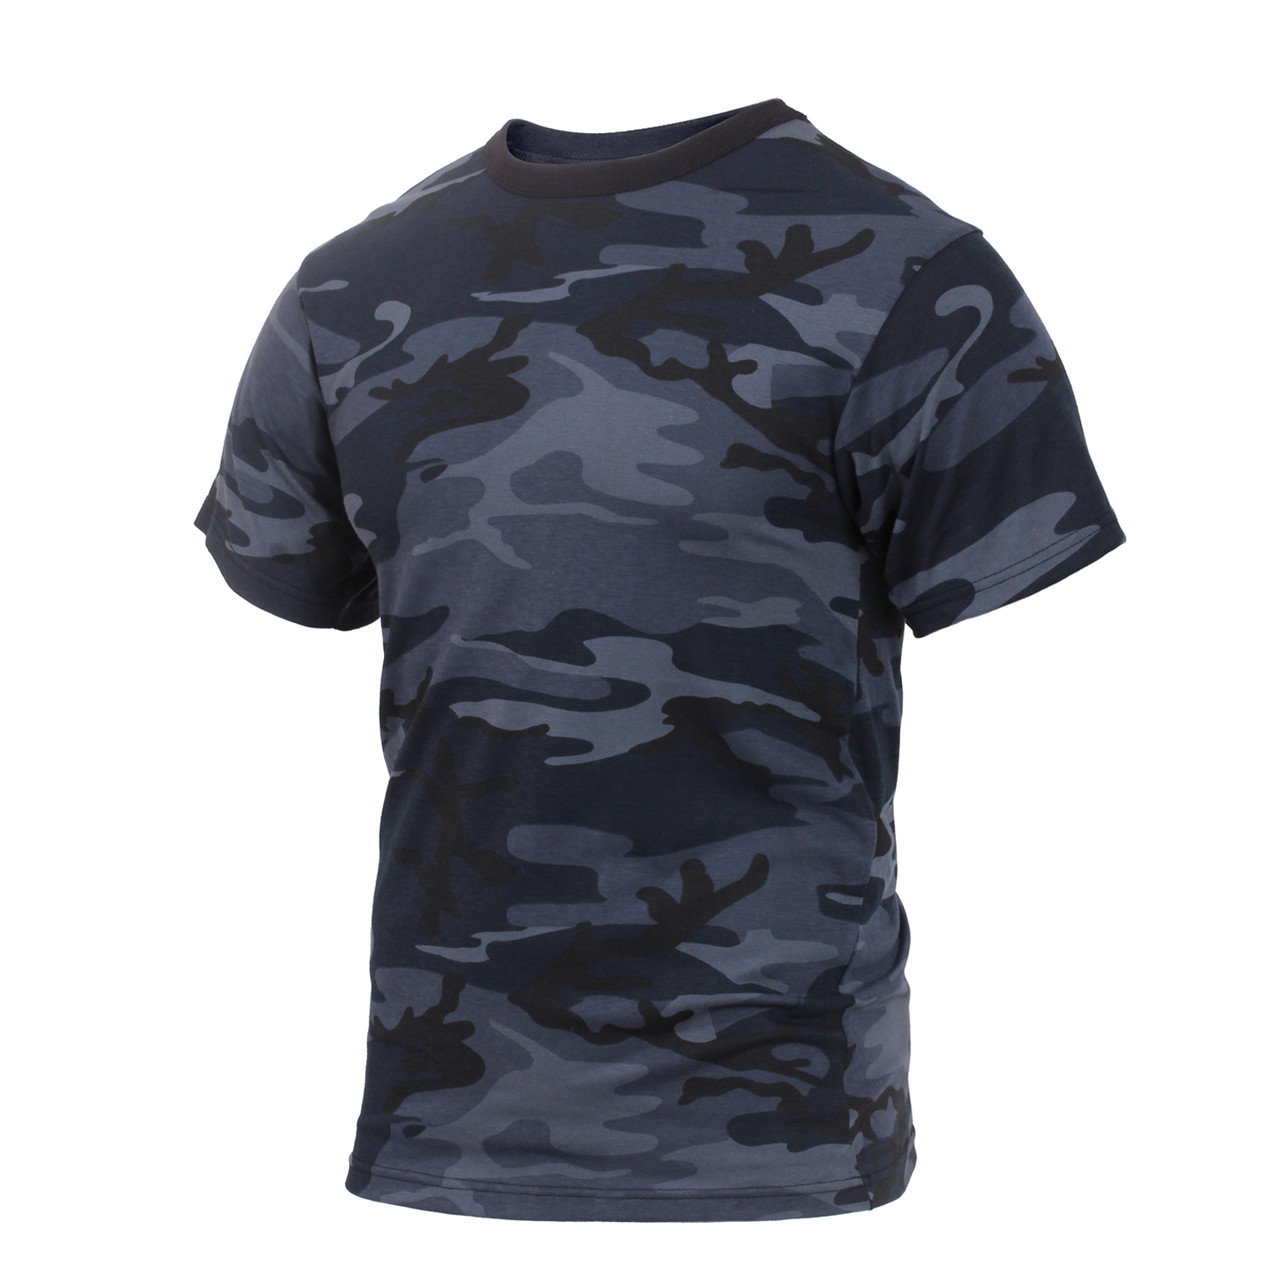 a05a0971 Shop Subdued Navy Camo T Shirts - Fatigues Army Navy